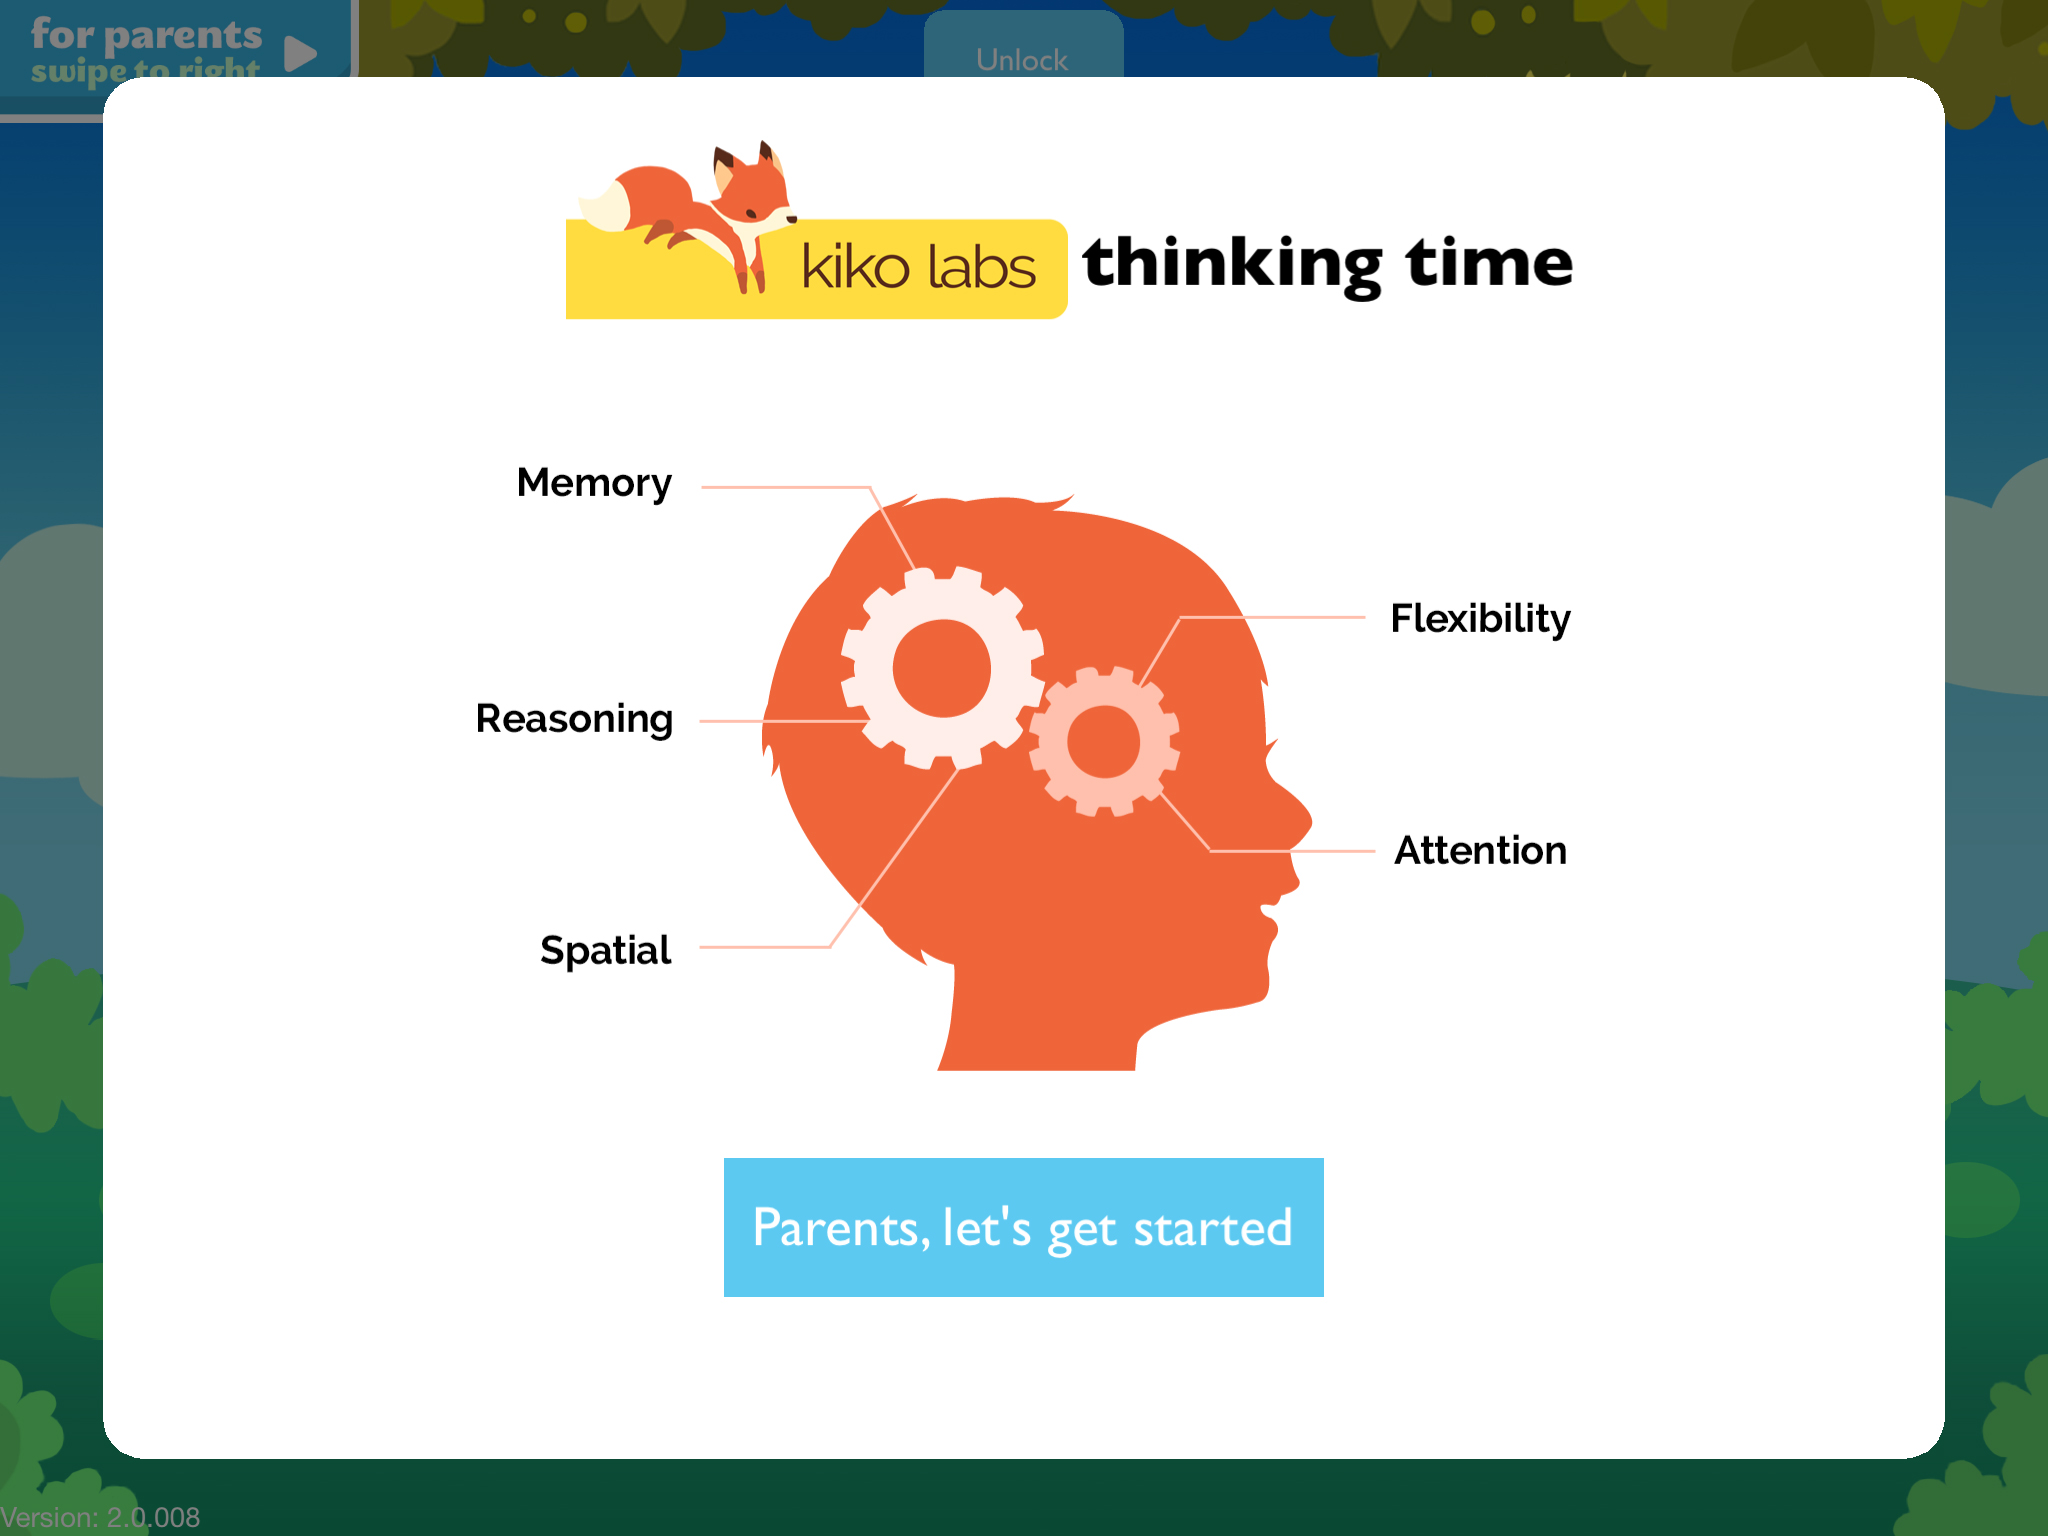 Kiko's Thinking Time brings brain-training games to children